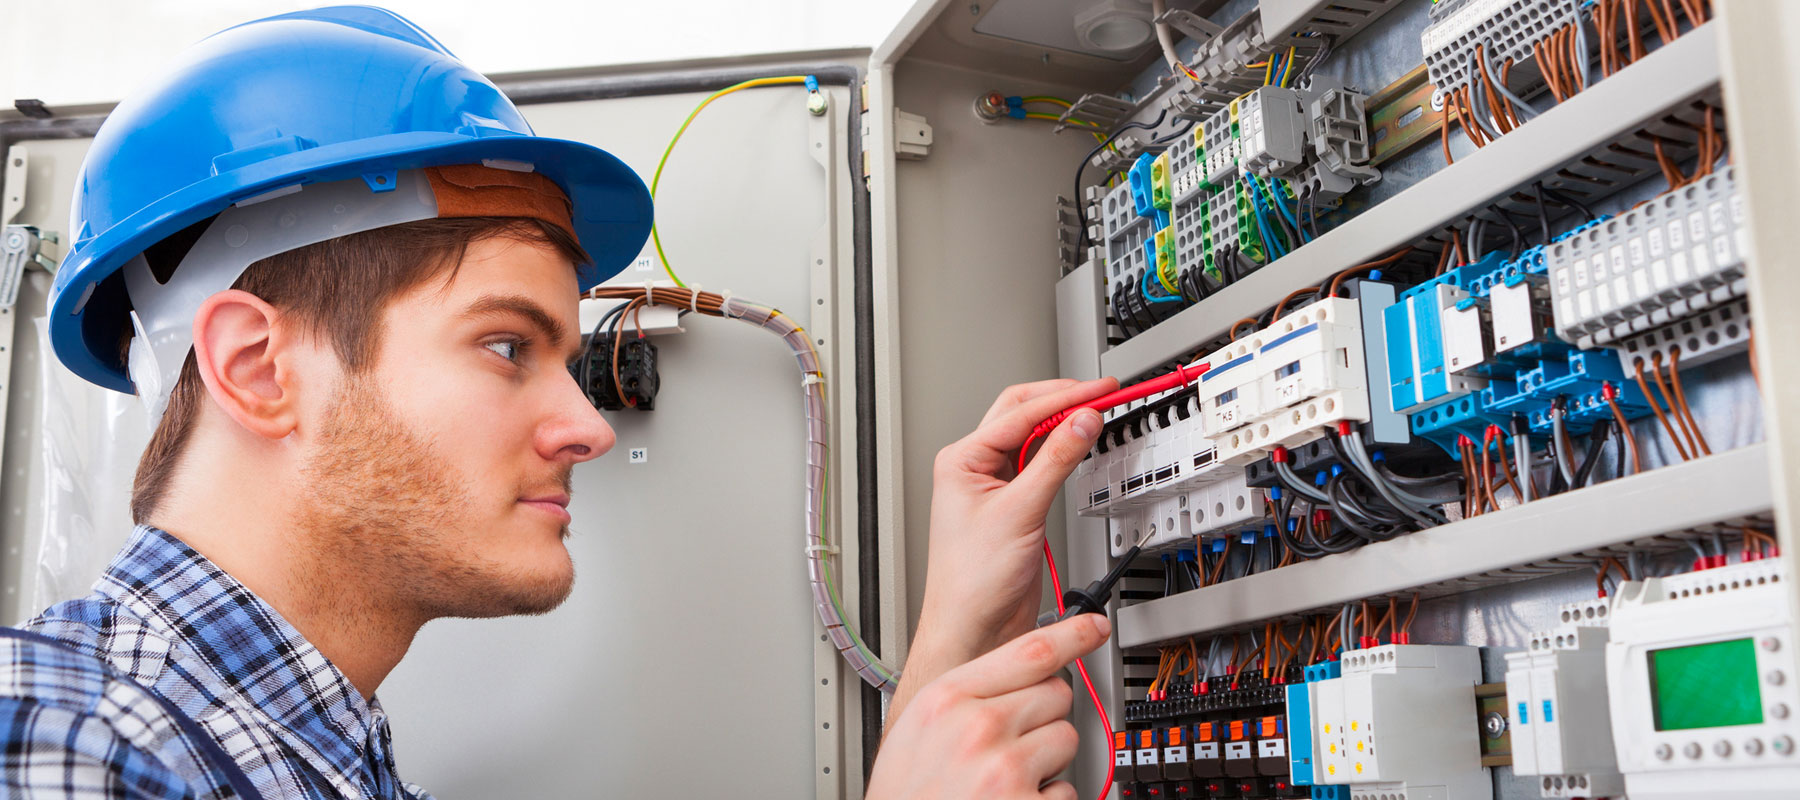 Commercial Electrical Services Irwindale | US Electrical